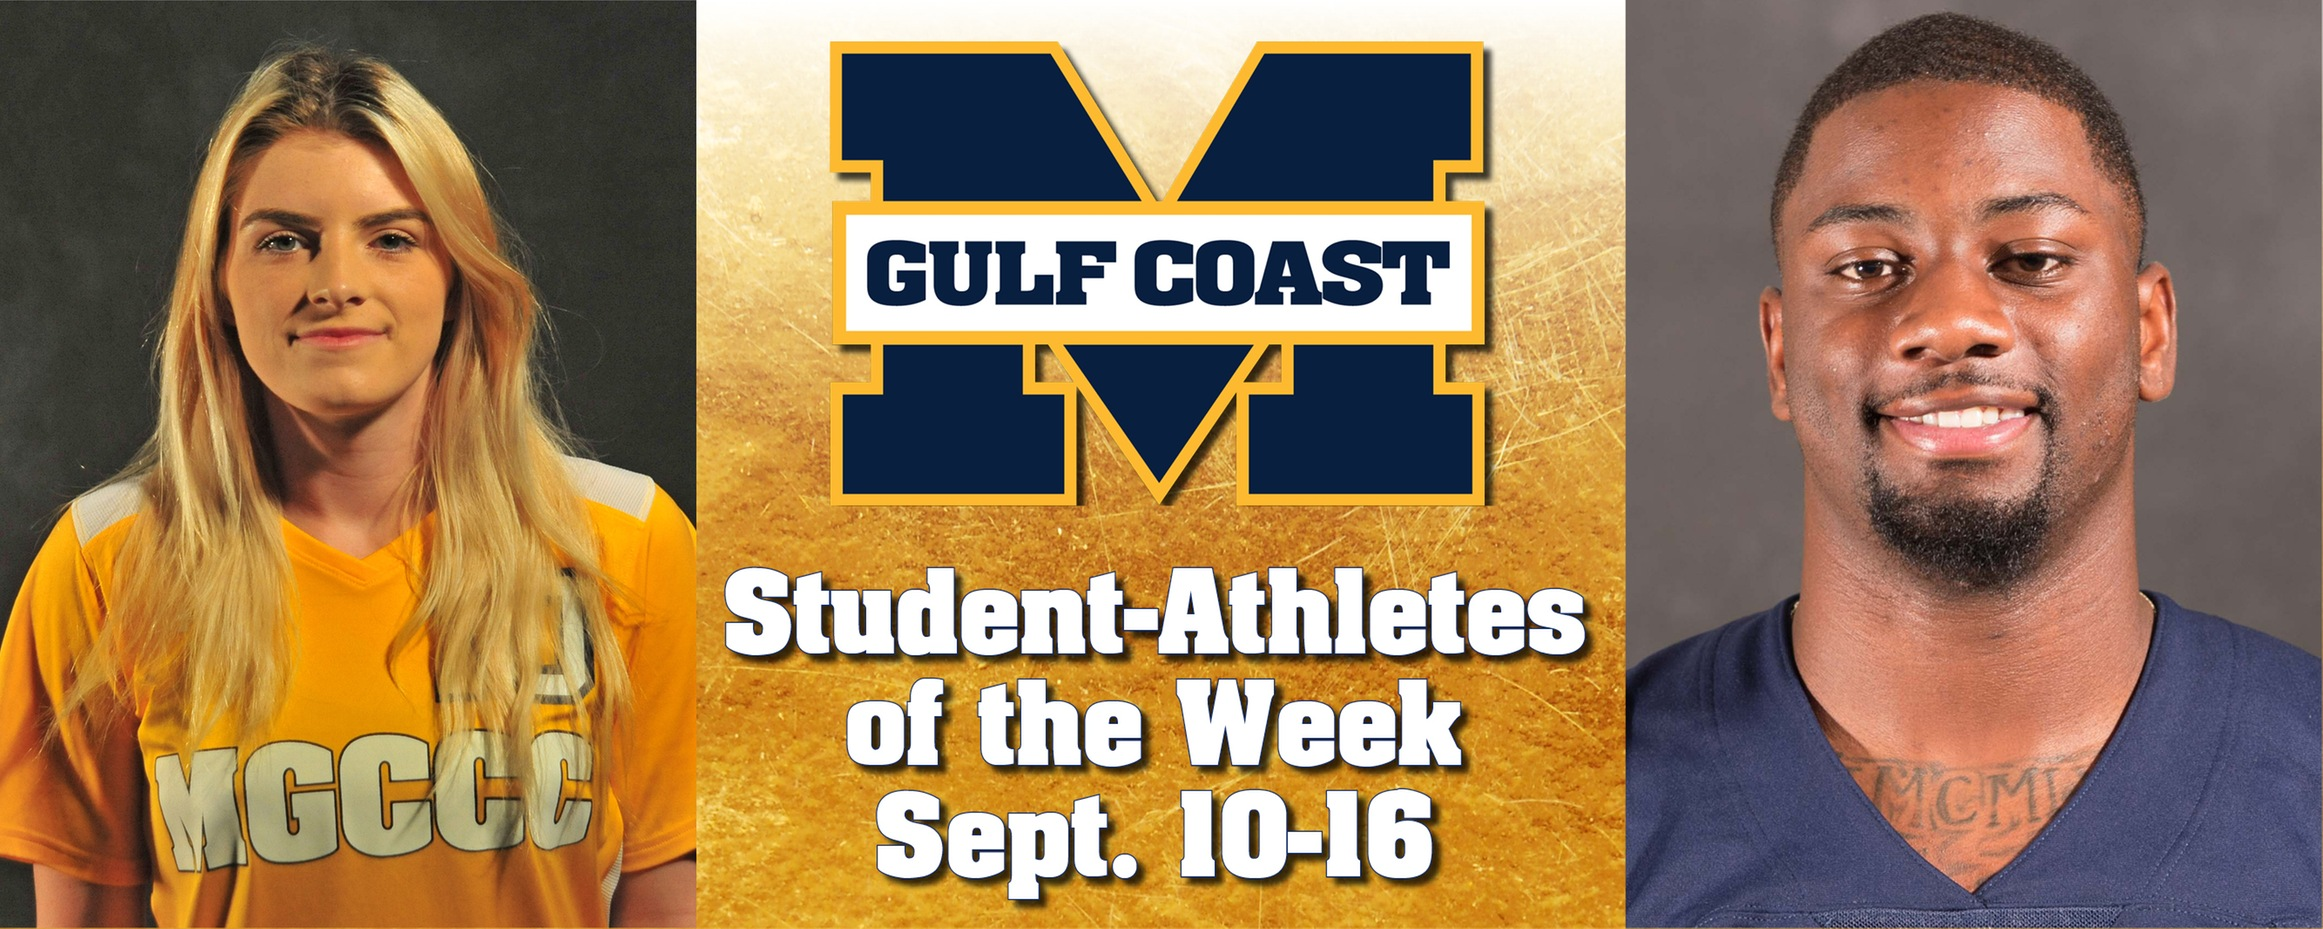 Payne, Narcisse named MGCCC Student-Athletes of the Week